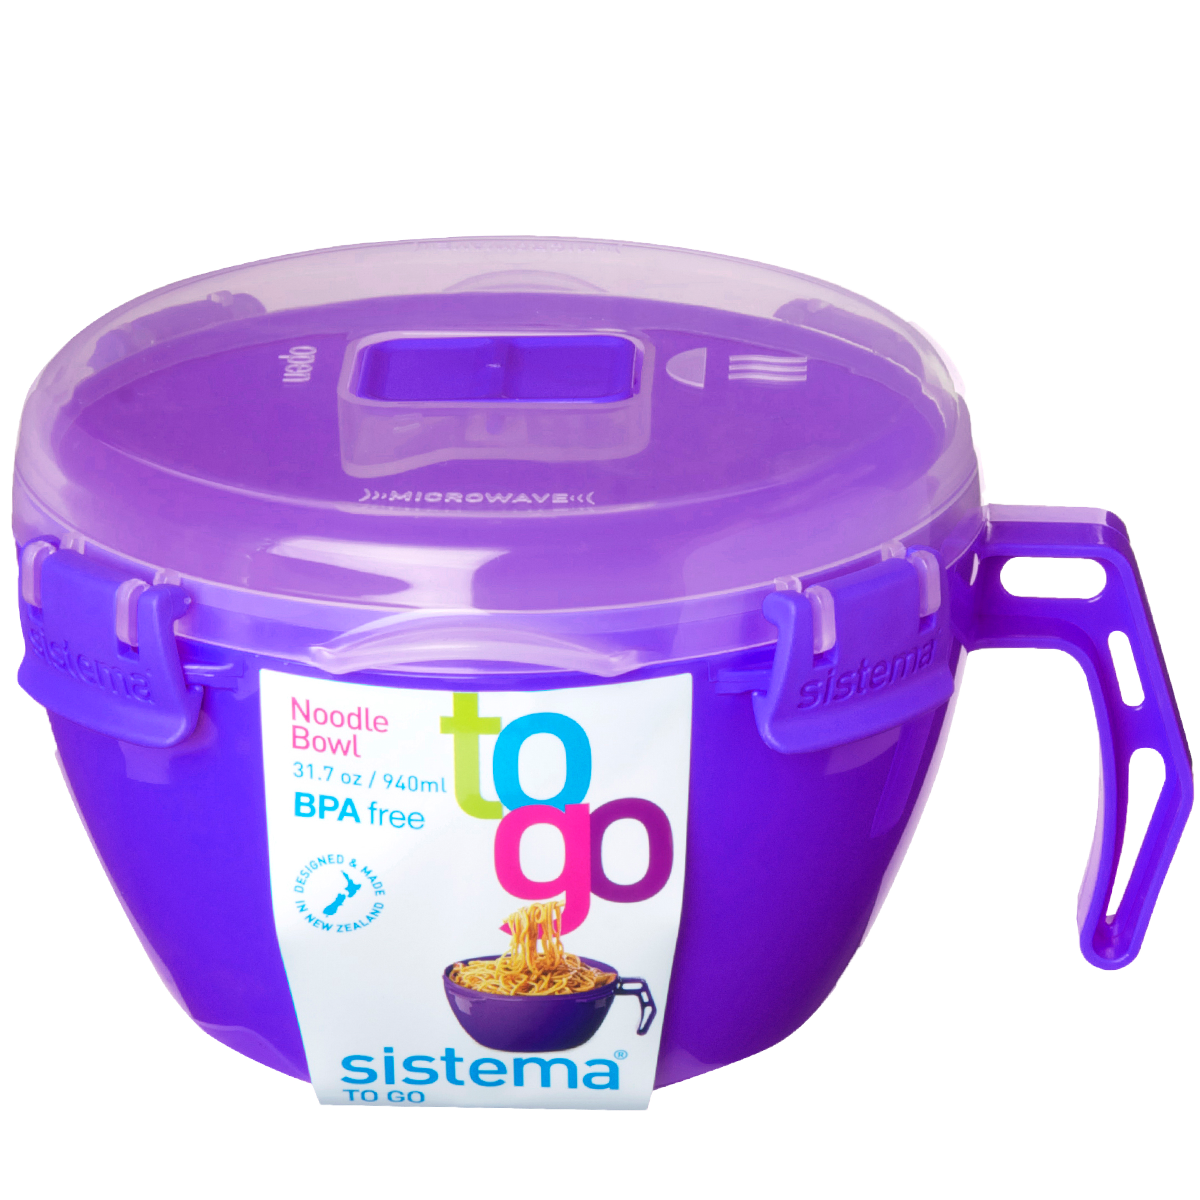 SISTEMA NOODLE BOWL 940ML PURPLE